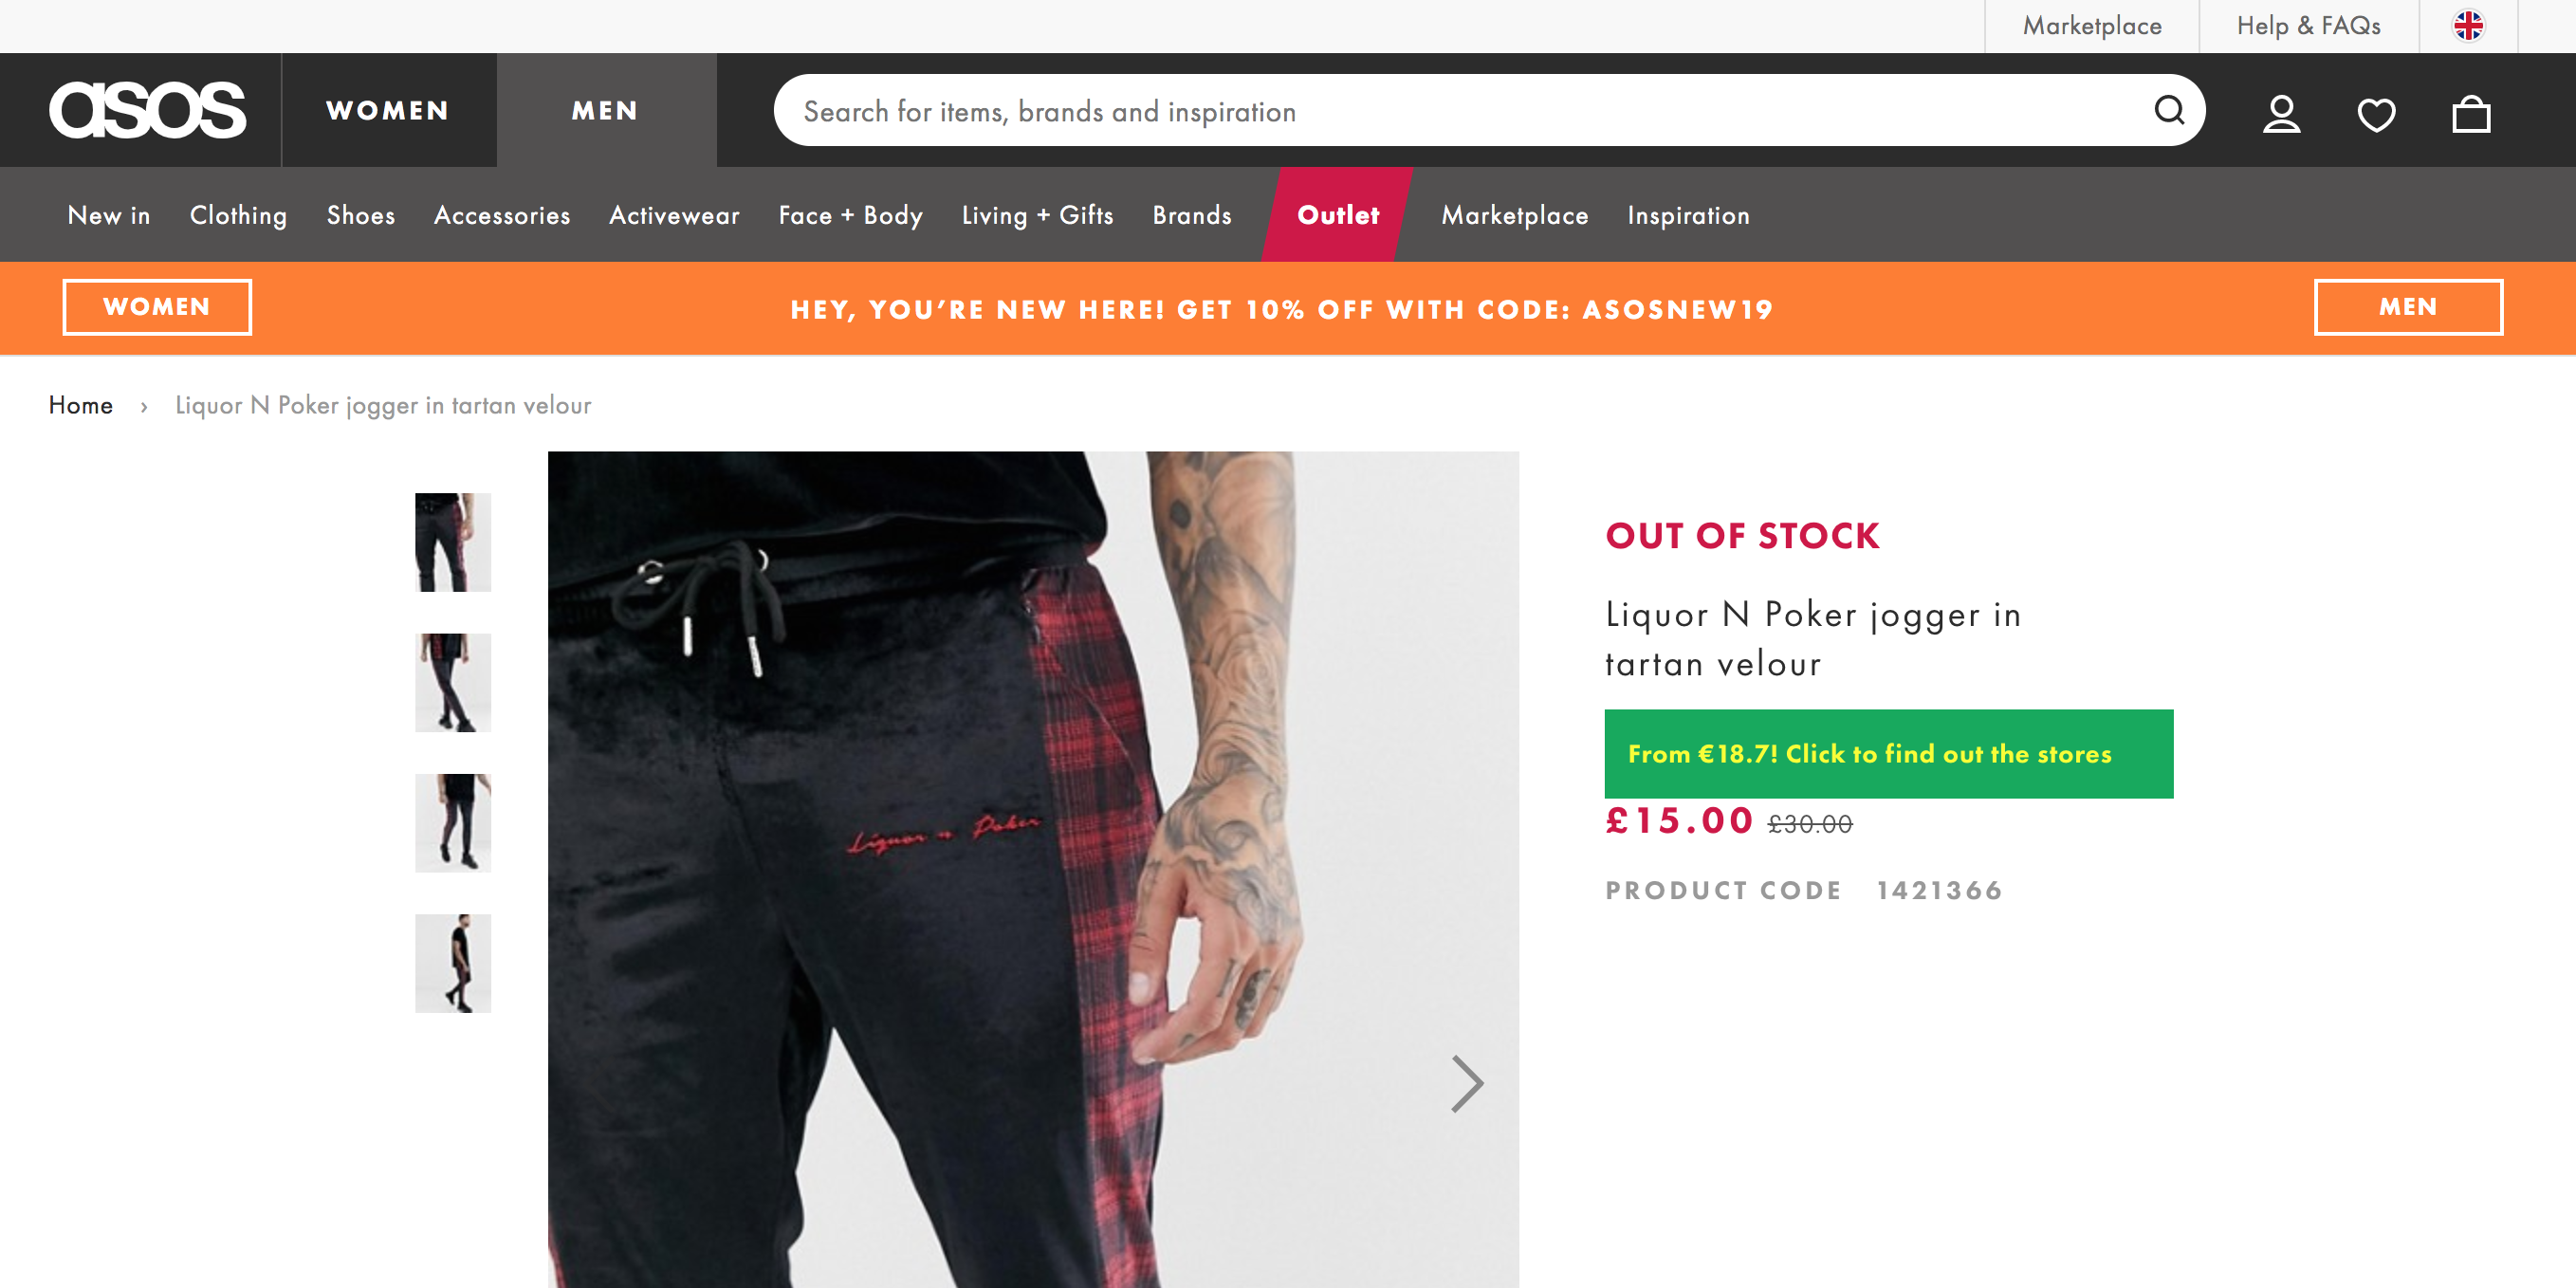 asos price comparison tool helping discover out of stock product